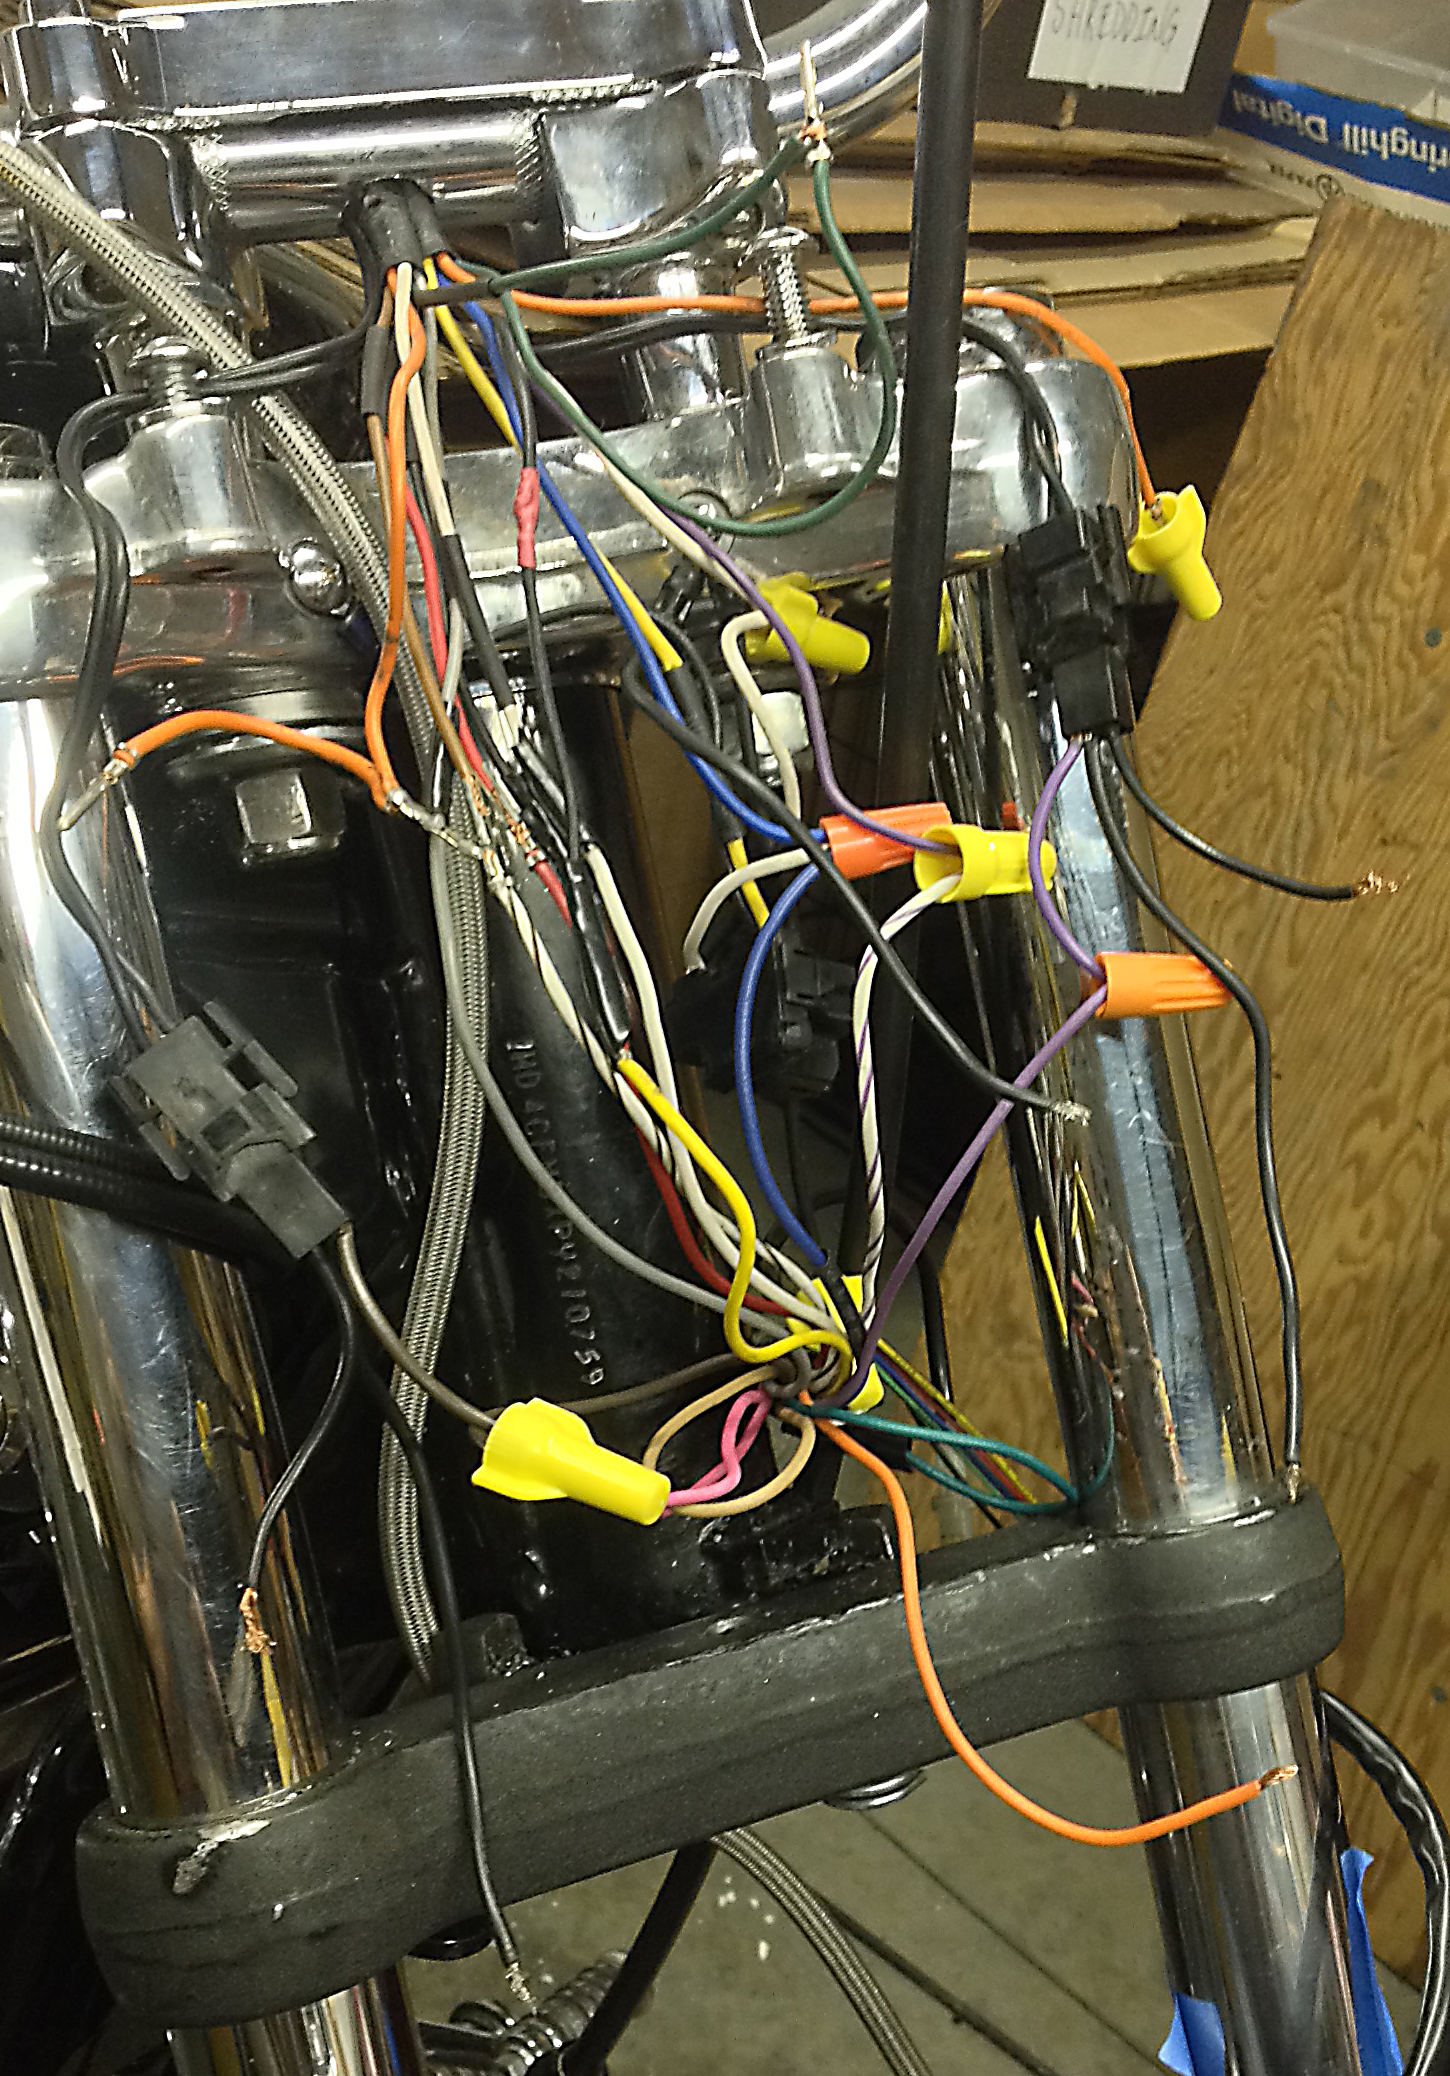 Maxresdefault in addition Img also D Pan Wiring Schematic Fl moreover D Coil Wiring Which Side Pink Wire P additionally D Dyna Power Tie In For Radio P. on harley sportster wiring diagram